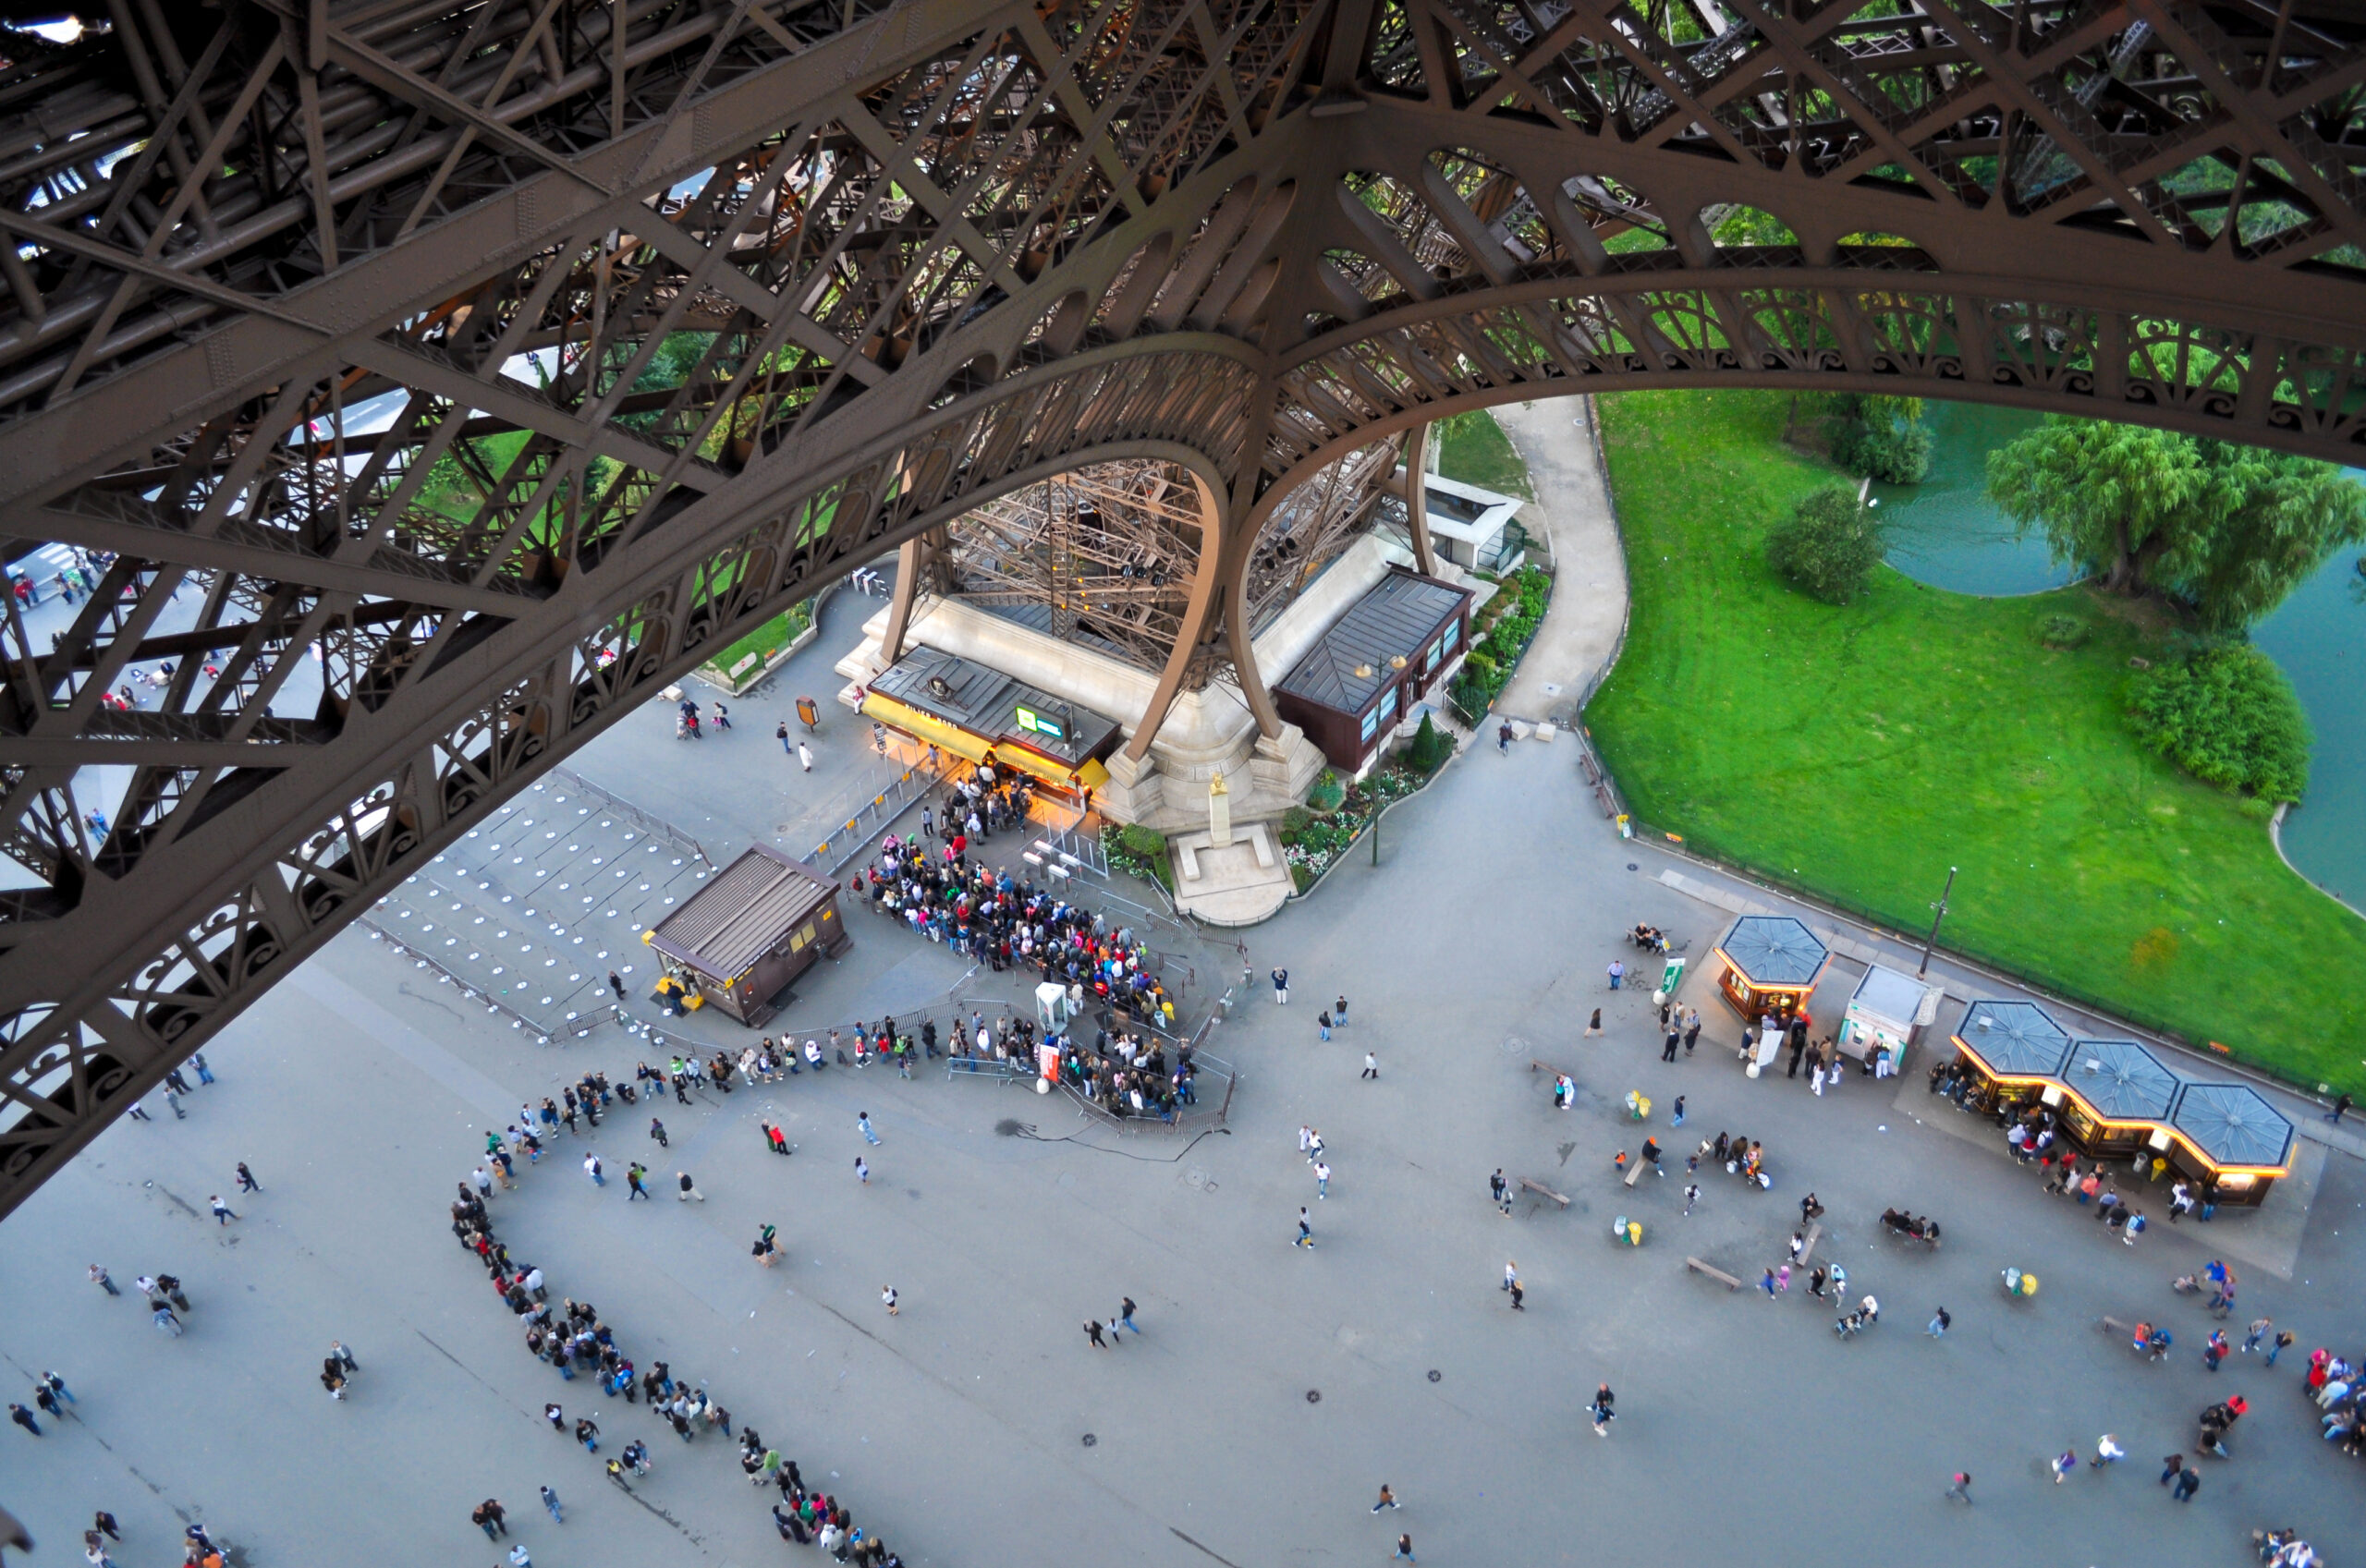 Crowds gather and form a long queue to visit the Eiffel tower.